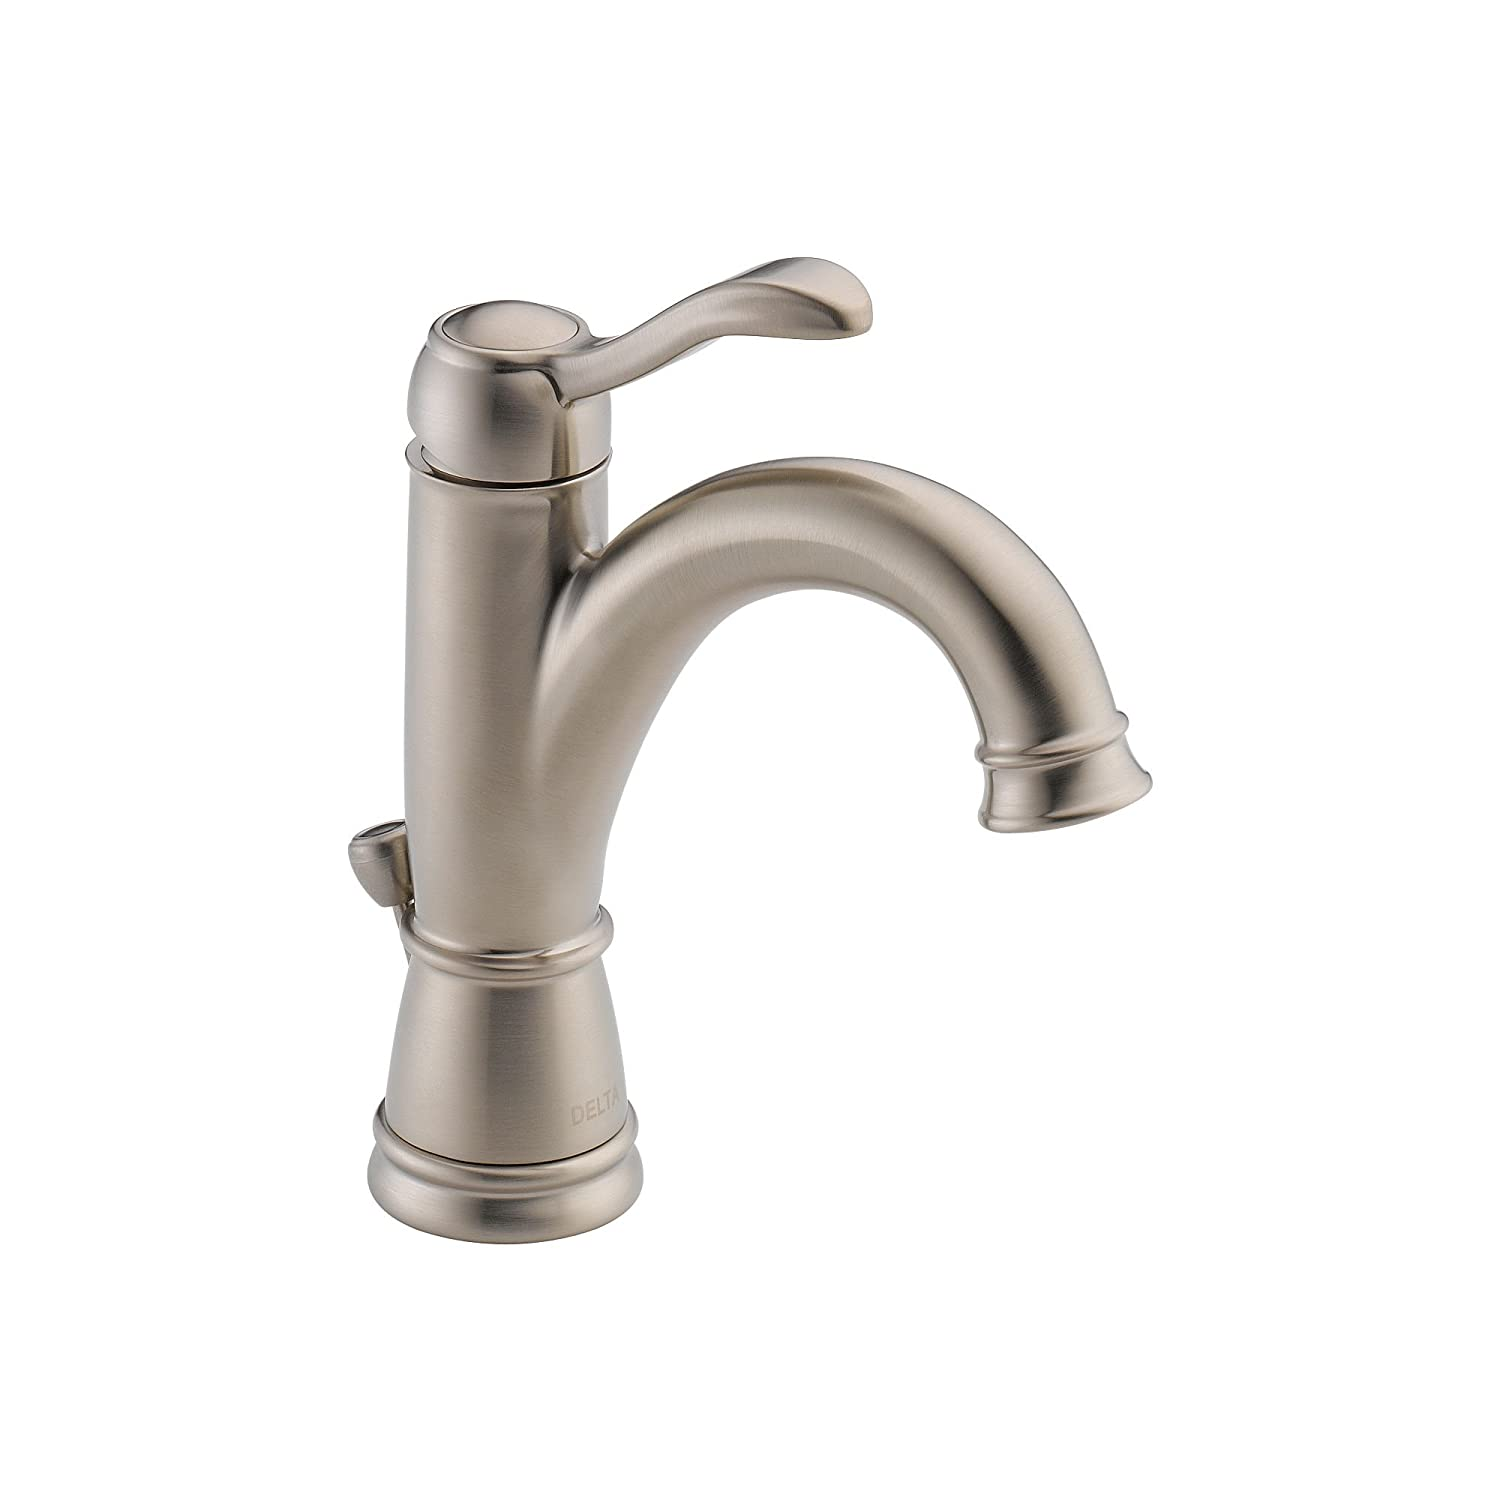 faucet nickel handle product md single ss dst with faucets technology delta brushed bathroom